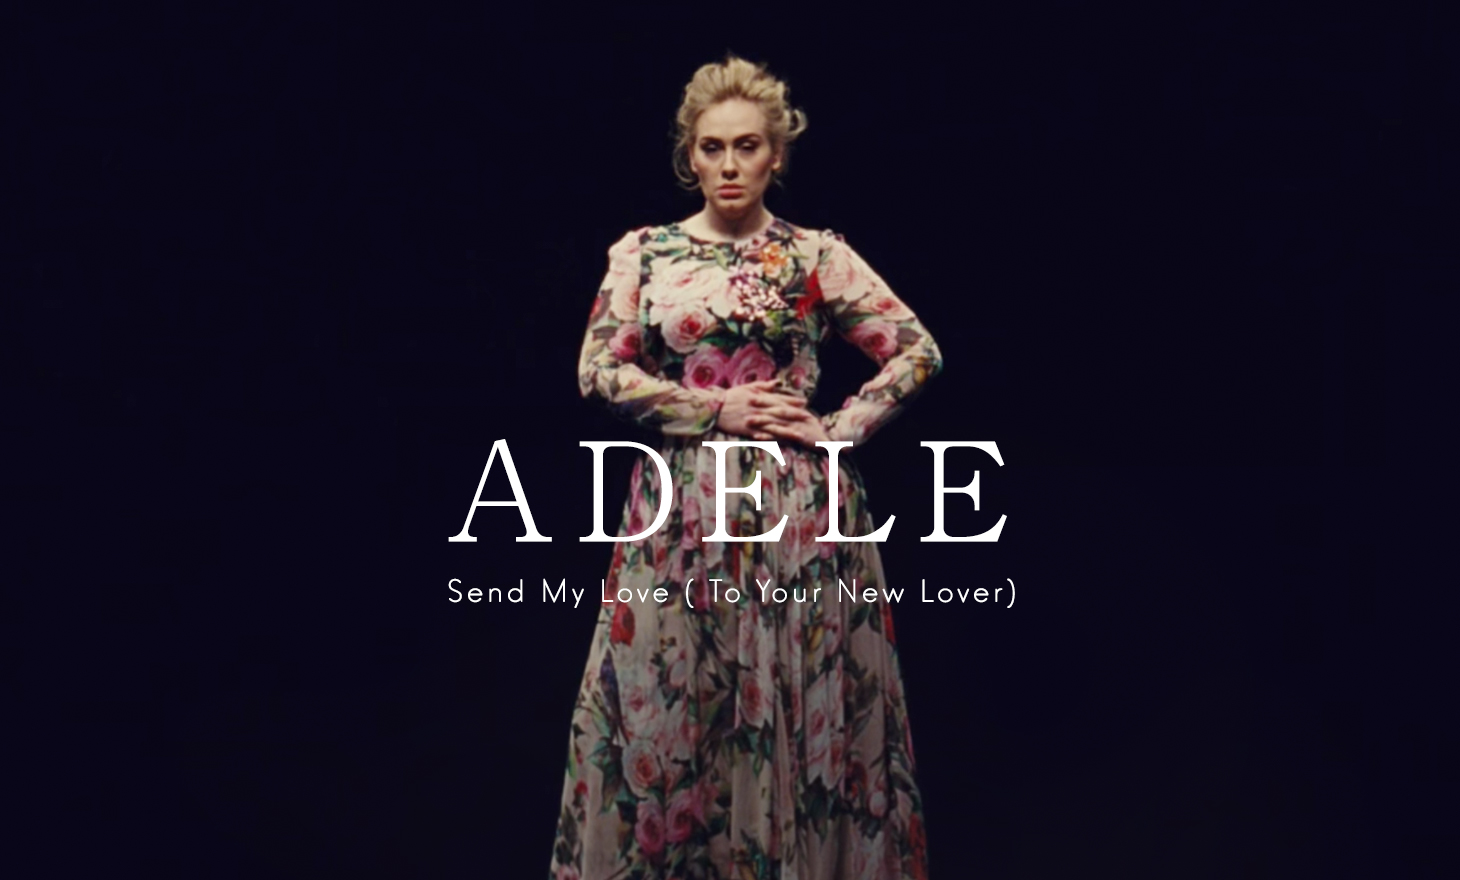 Adele : Send My Love (To Your New Lover)